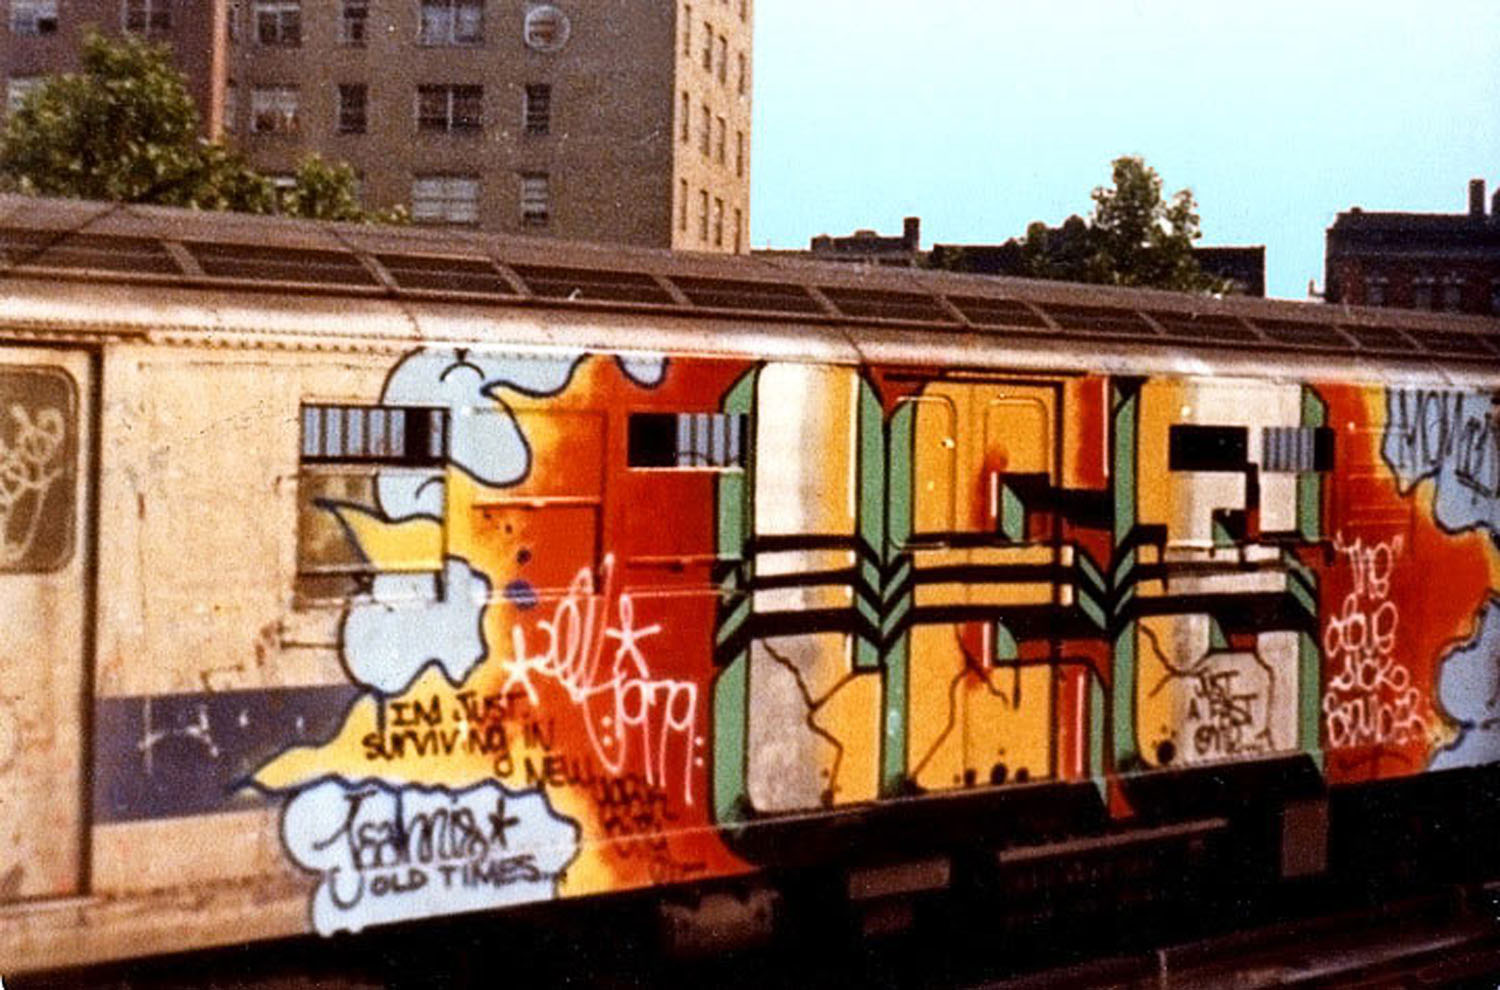 Lee Quinones  painted subway car in the late 70s / early 80s.